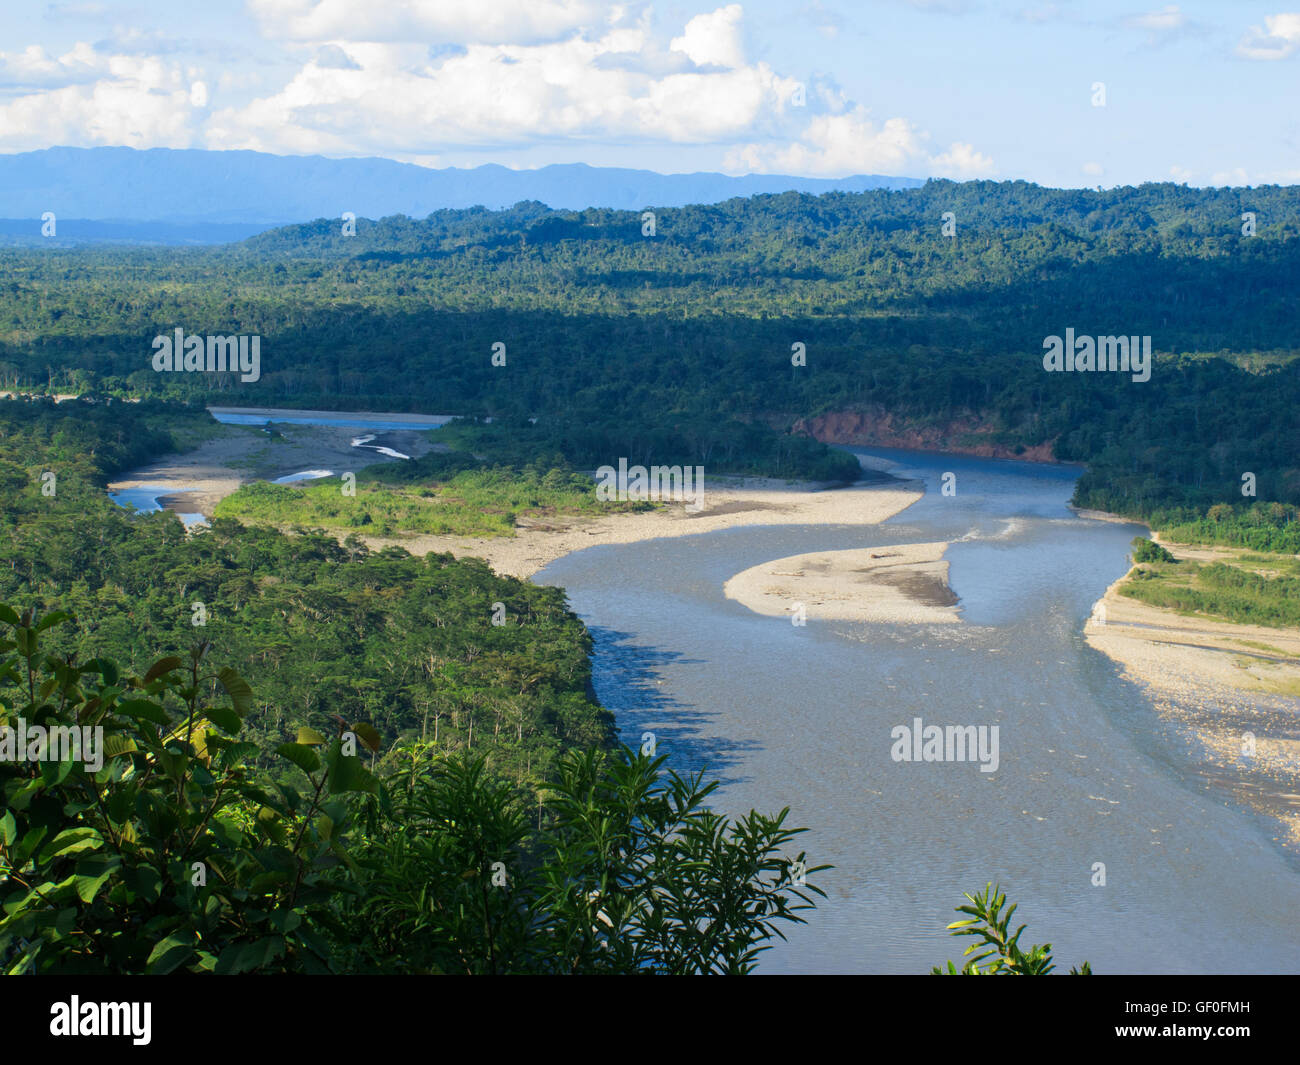 The view of Manu National Park, amazonian forest. - Stock Image